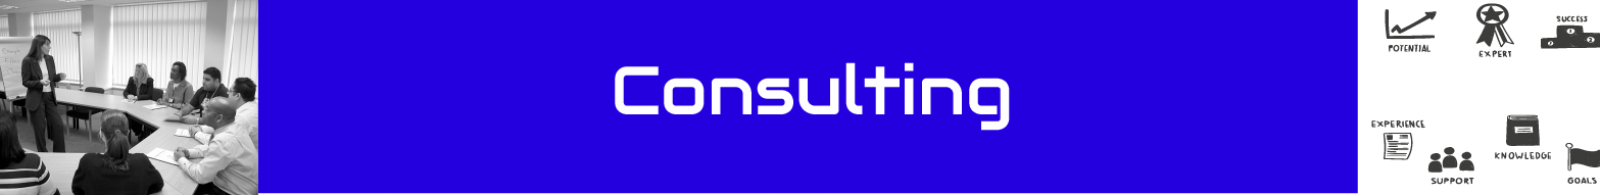 Banner_Consulting_V4